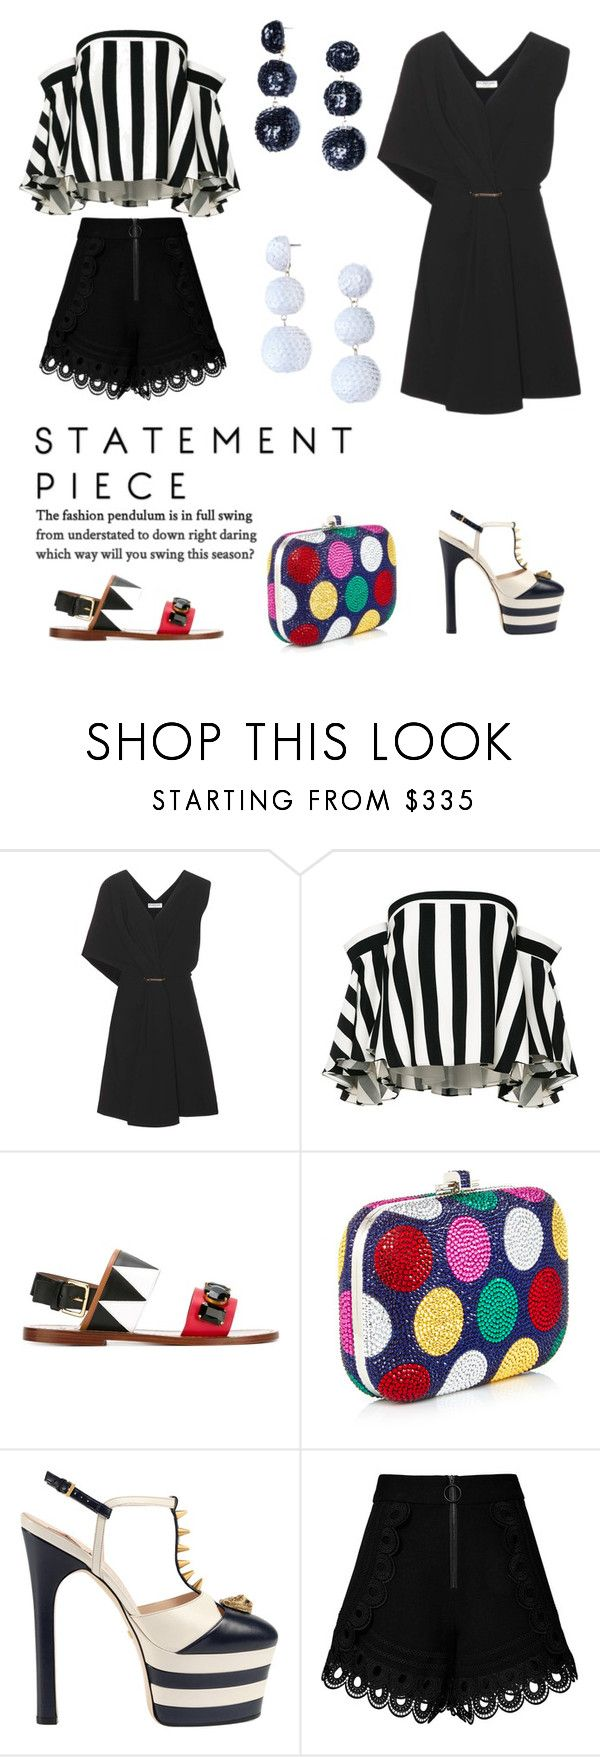 """Black and White Statement"" by shopsmth on Polyvore featuring Balenciaga, Milly, Marni, Gucci and self-portrait"